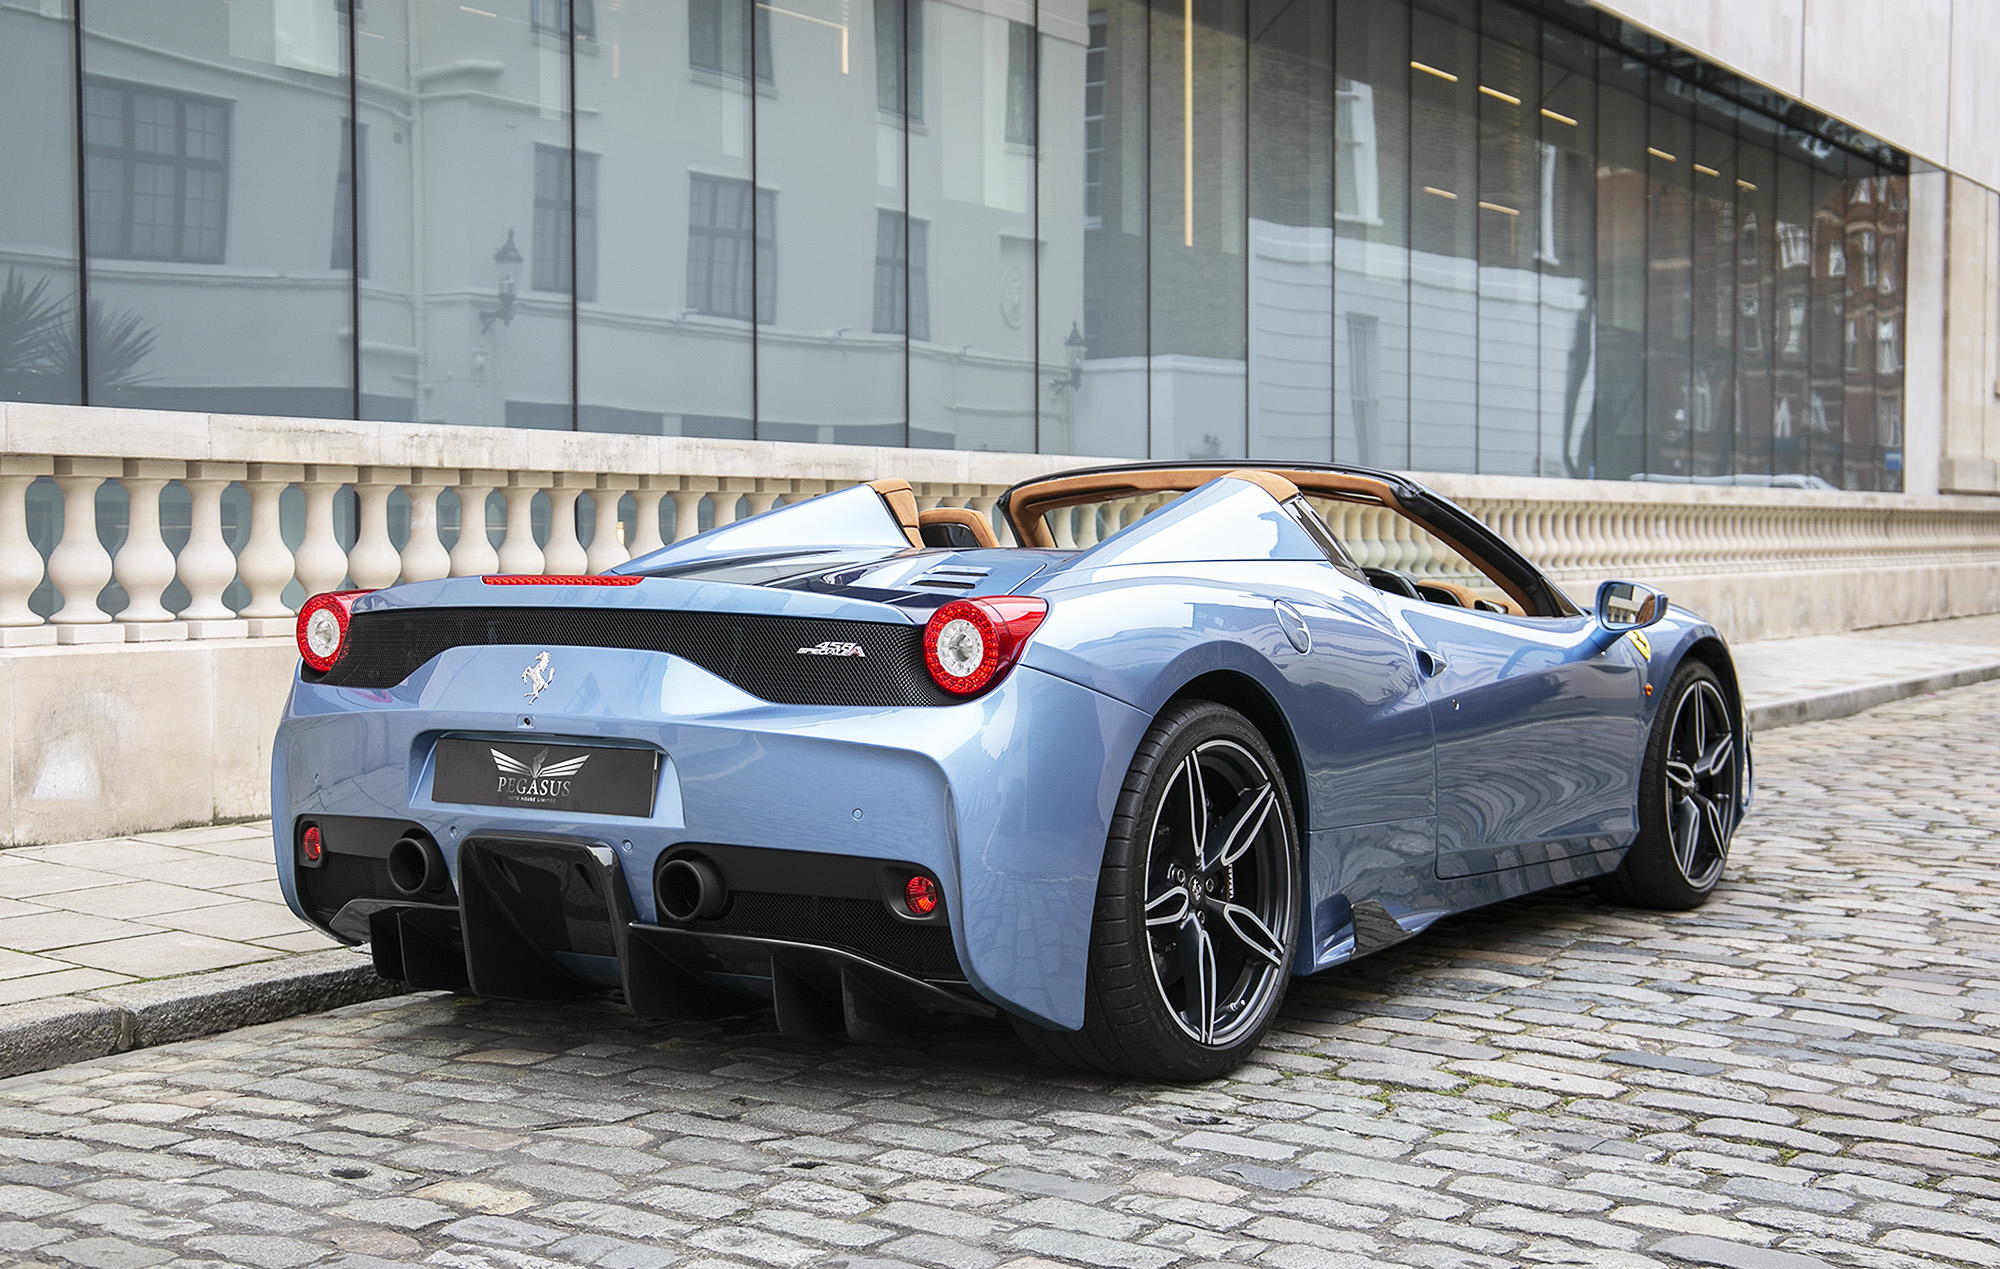 Ferrari 458 Speciale A An 850k Baby Blue Dream Come True Carscoops